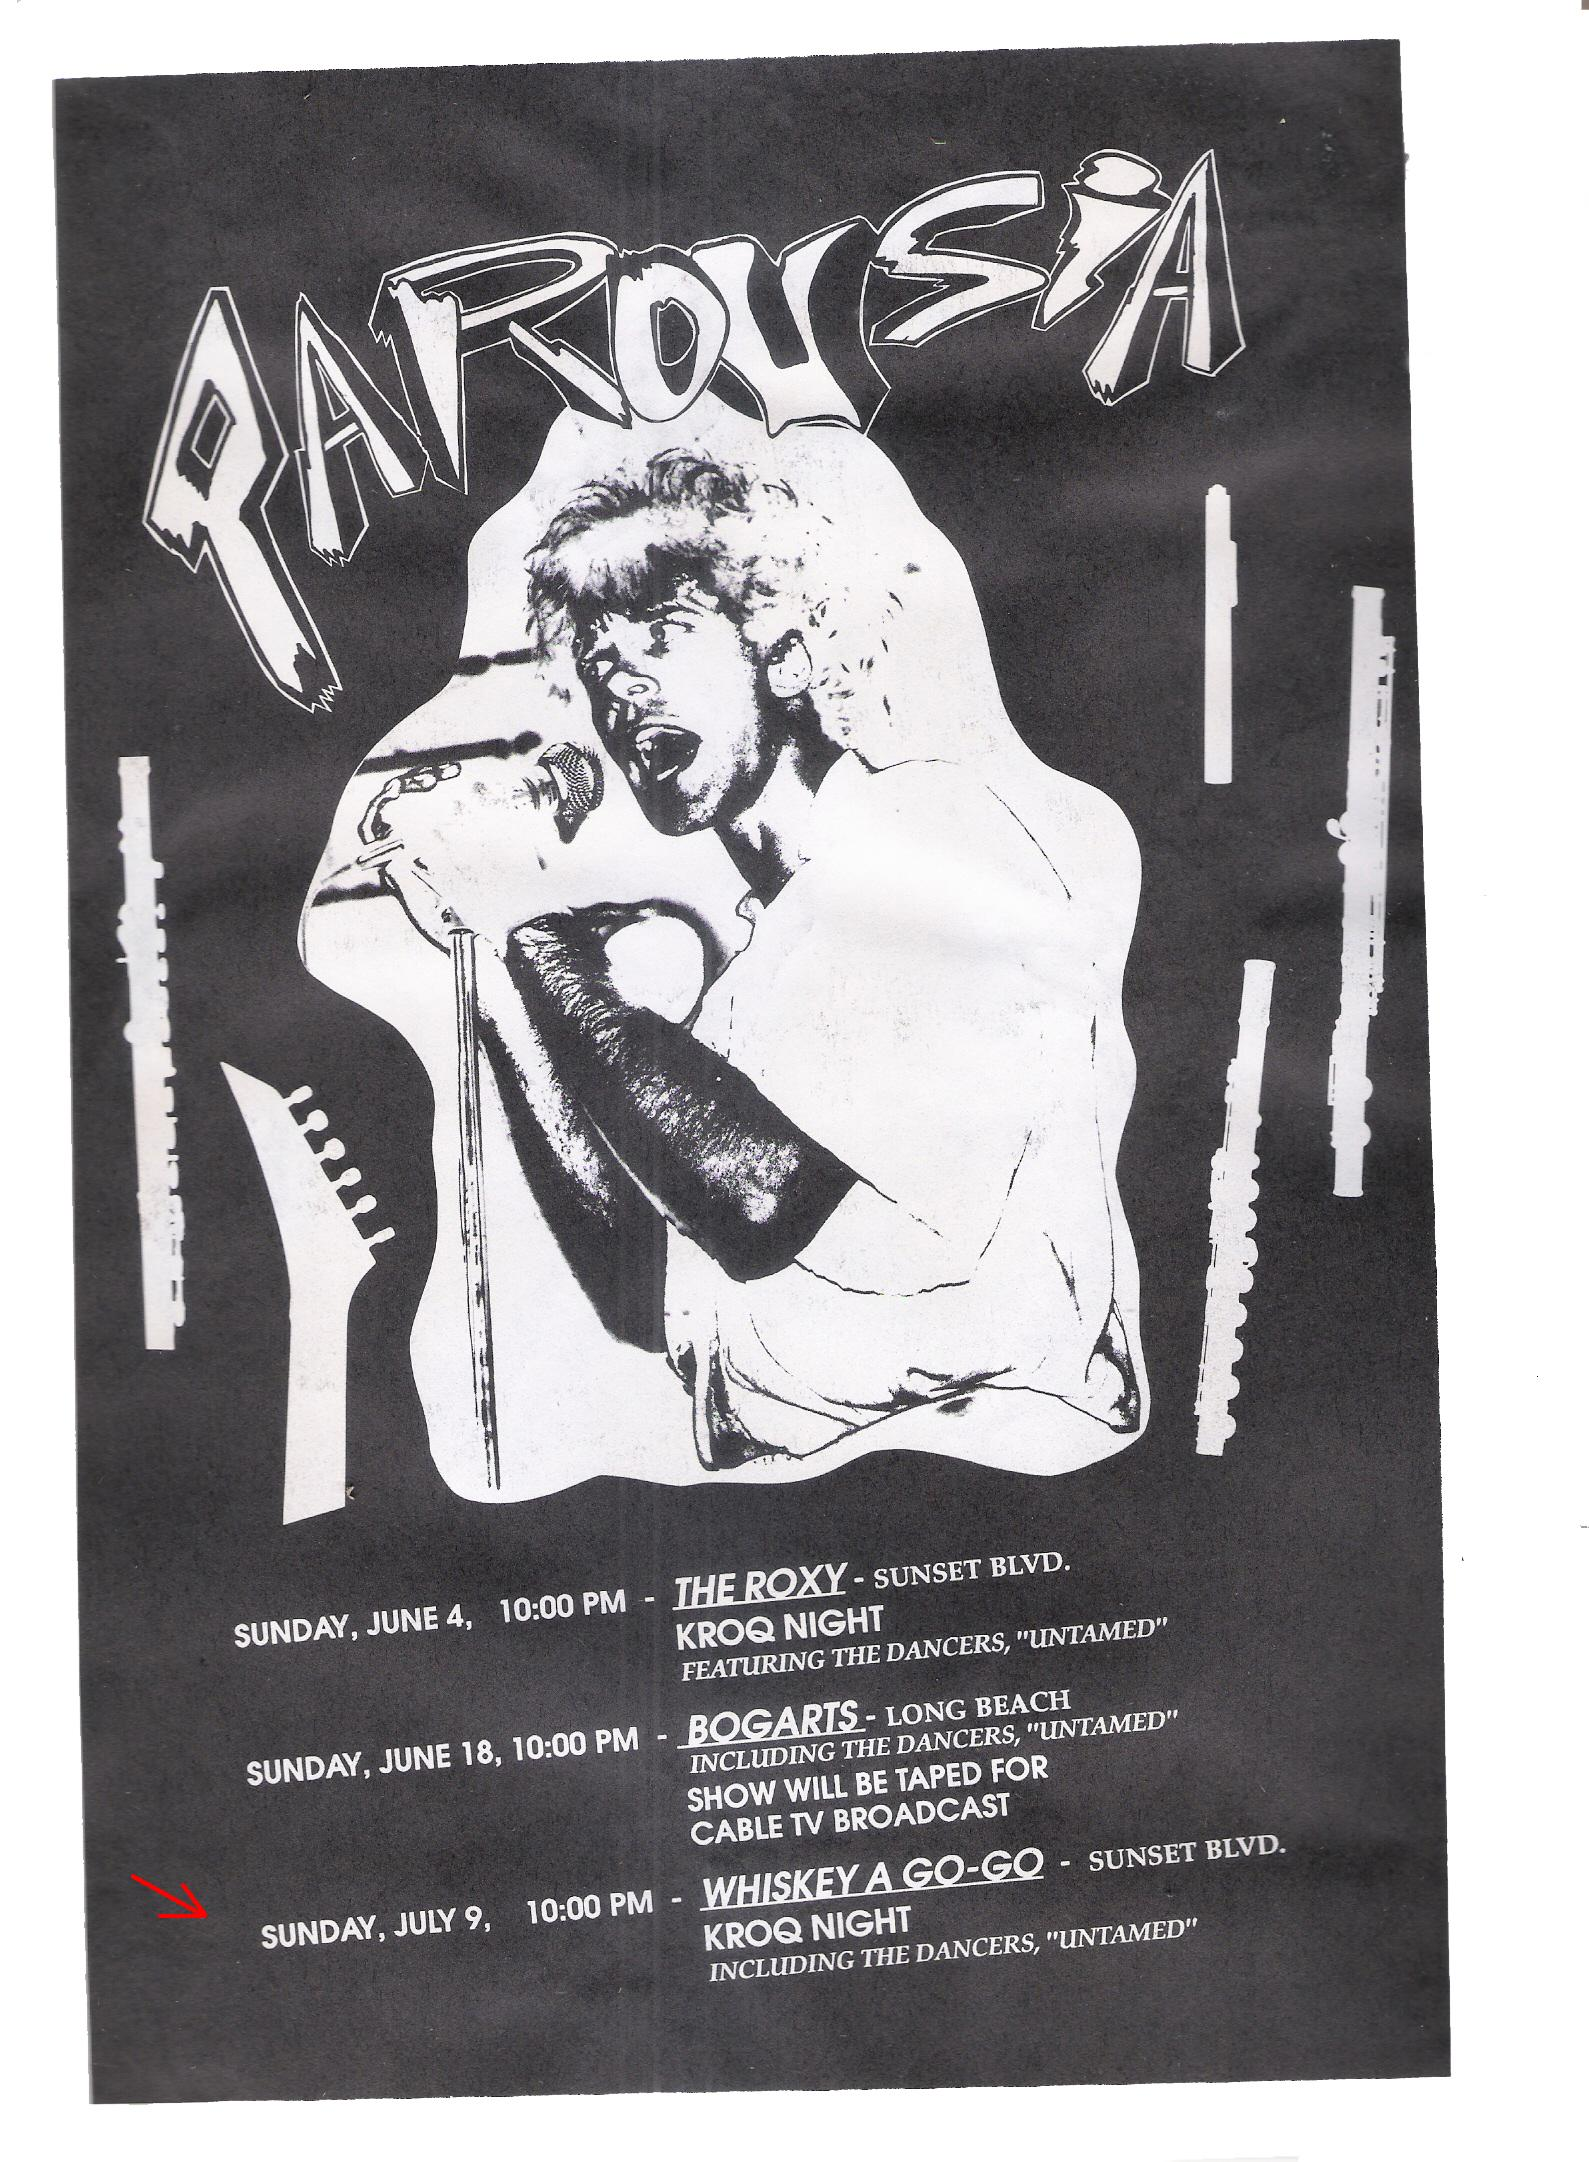 Parousia at the Whisky a-Go-Go Sunday July 9th, 1989